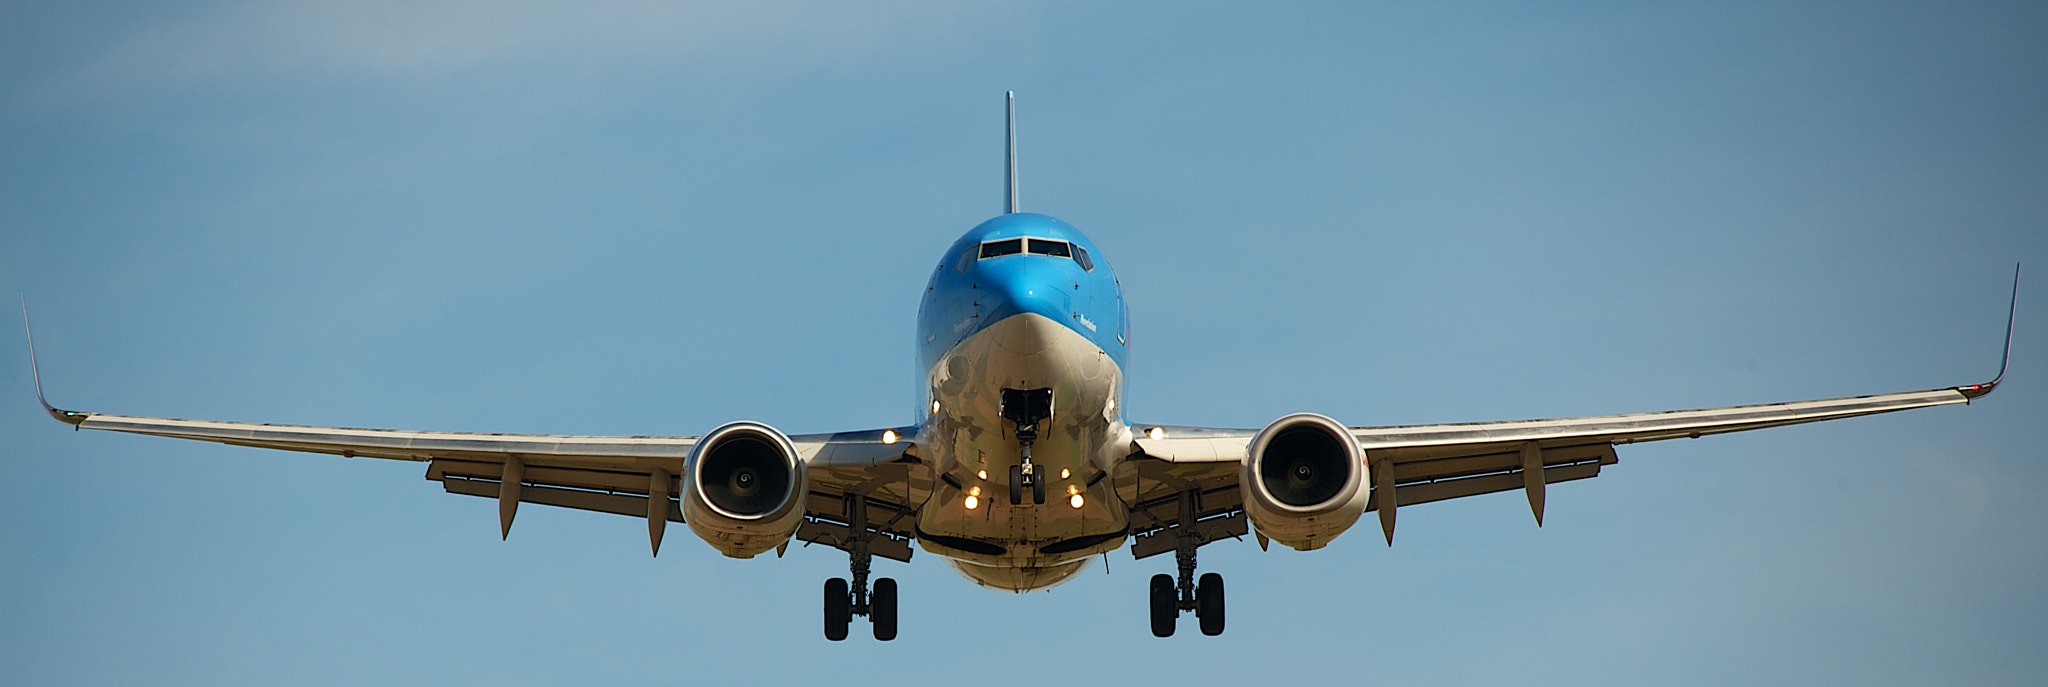 Photograph Airplane by Didier V.V. on 500px